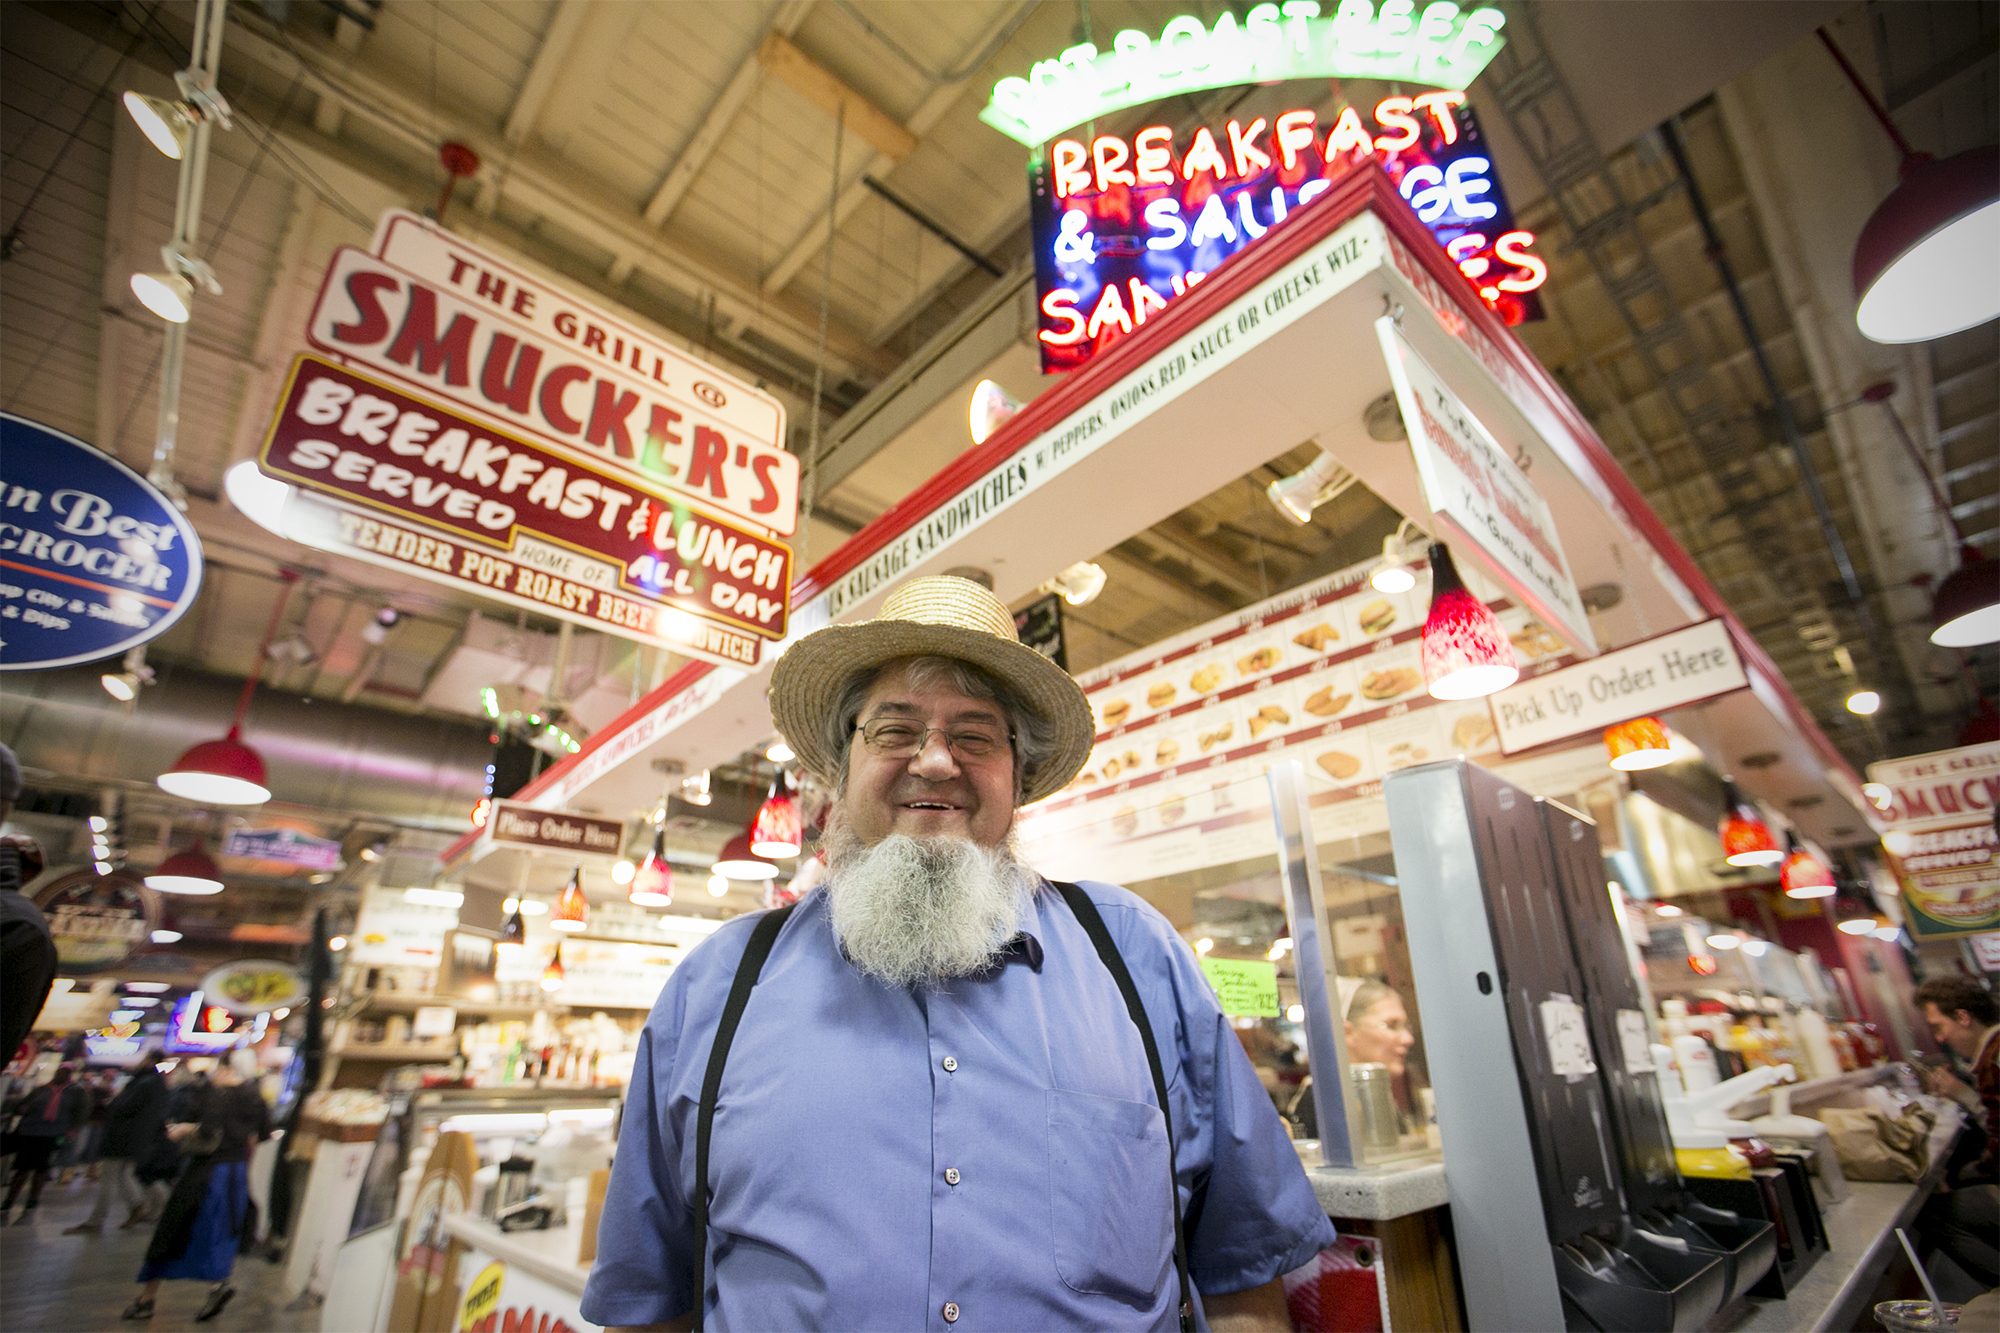 Moses Smucker, owner of The Grill at Smucker´s in Reading Terminal Market.